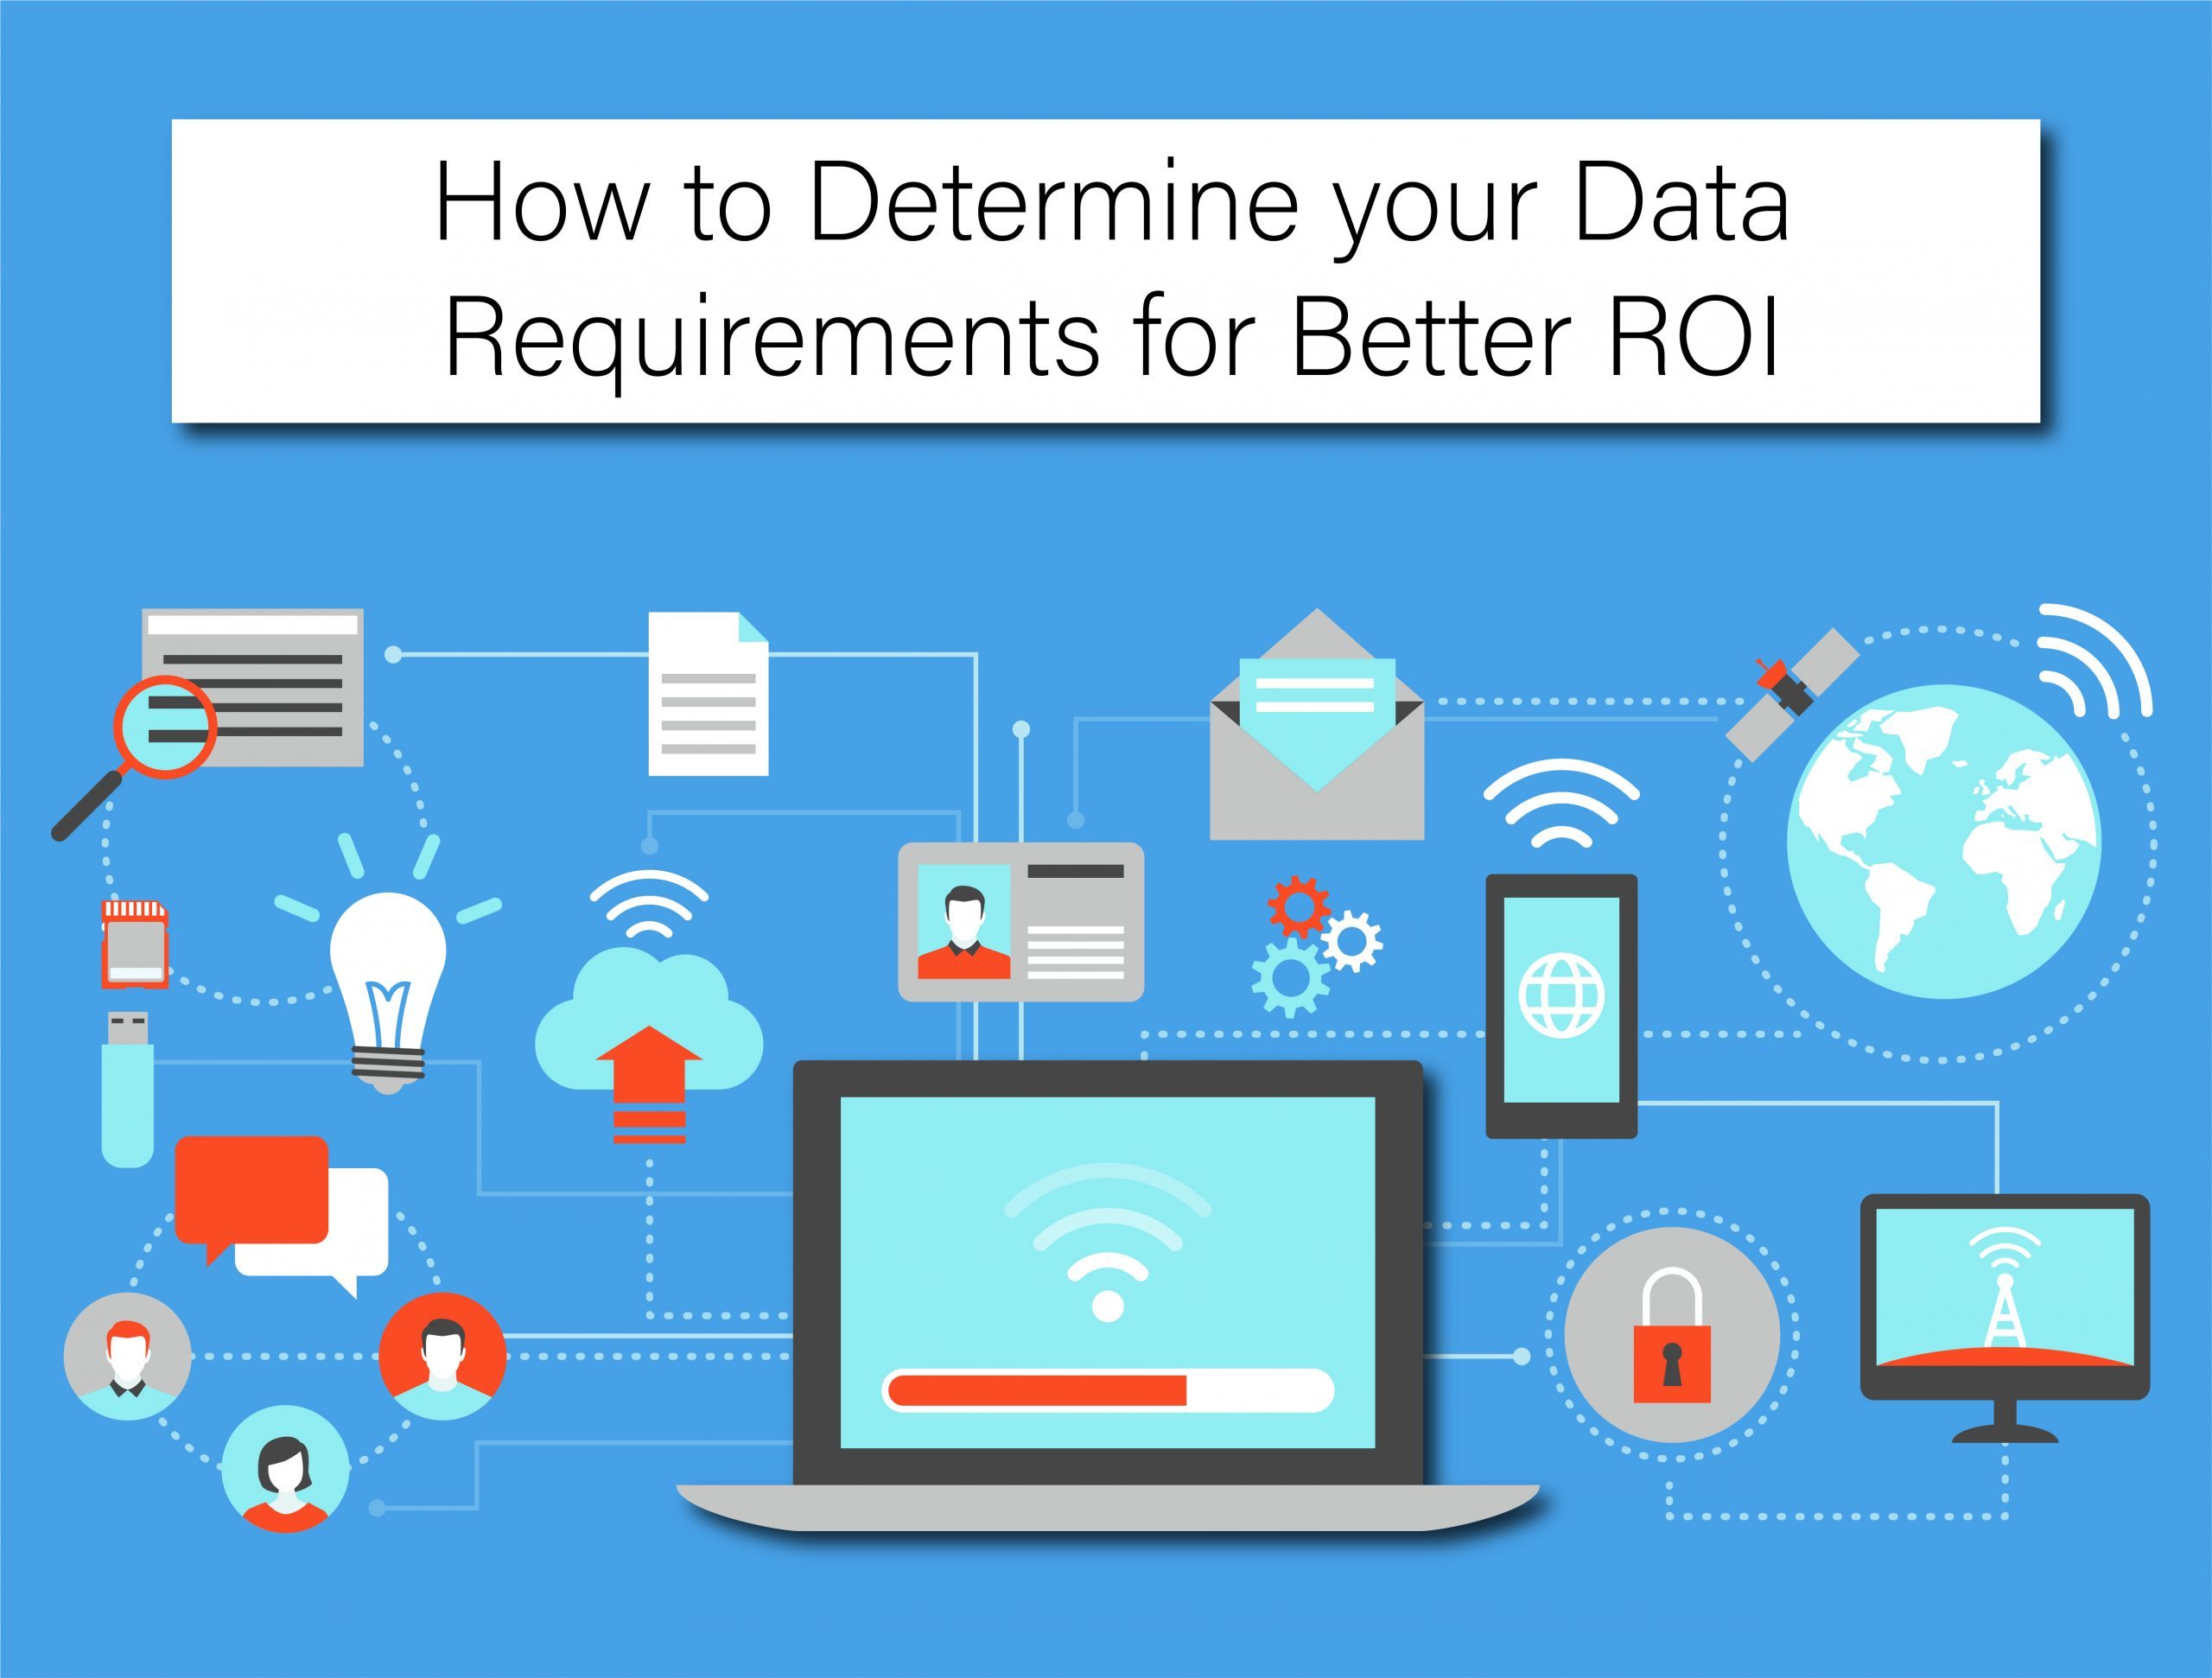 How to Determine your Data Requirements for Better ROI